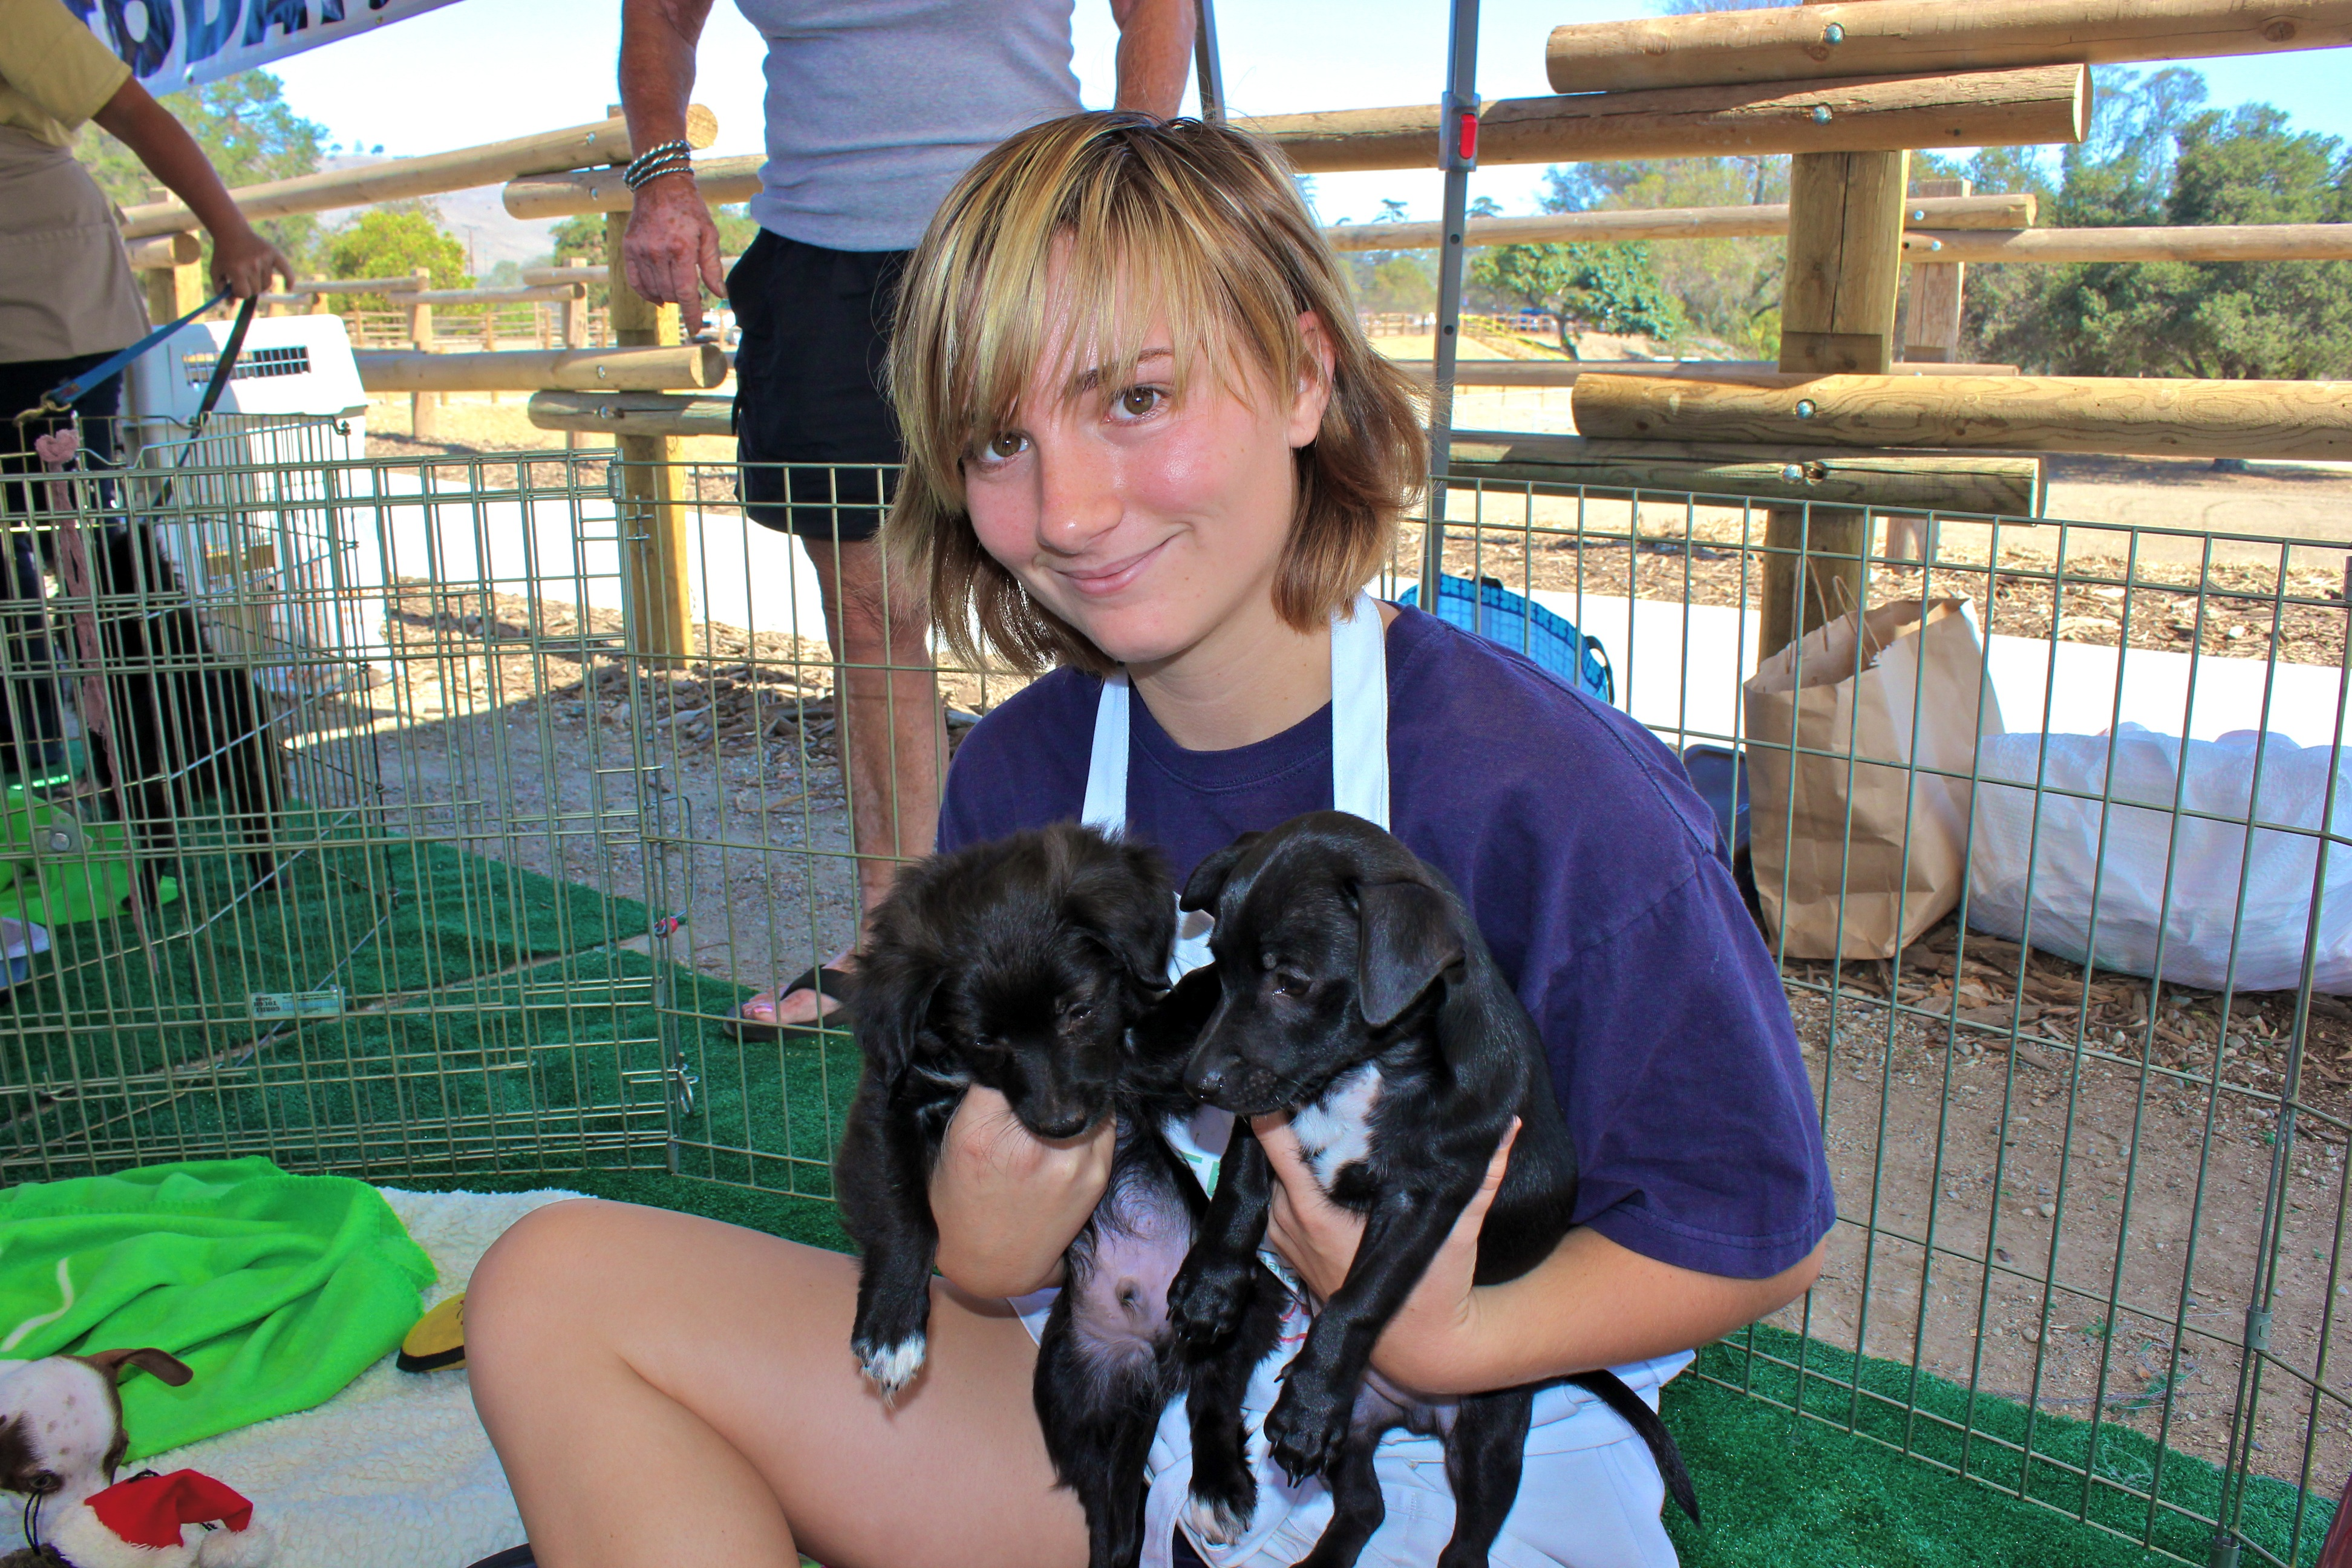 Codi Hall, a volunteer with the Greendog Foundation, holds two puppies that were available for adoption during the grand opening of the Dr. Joe Cortese Dog Park. Photo by Brian Park